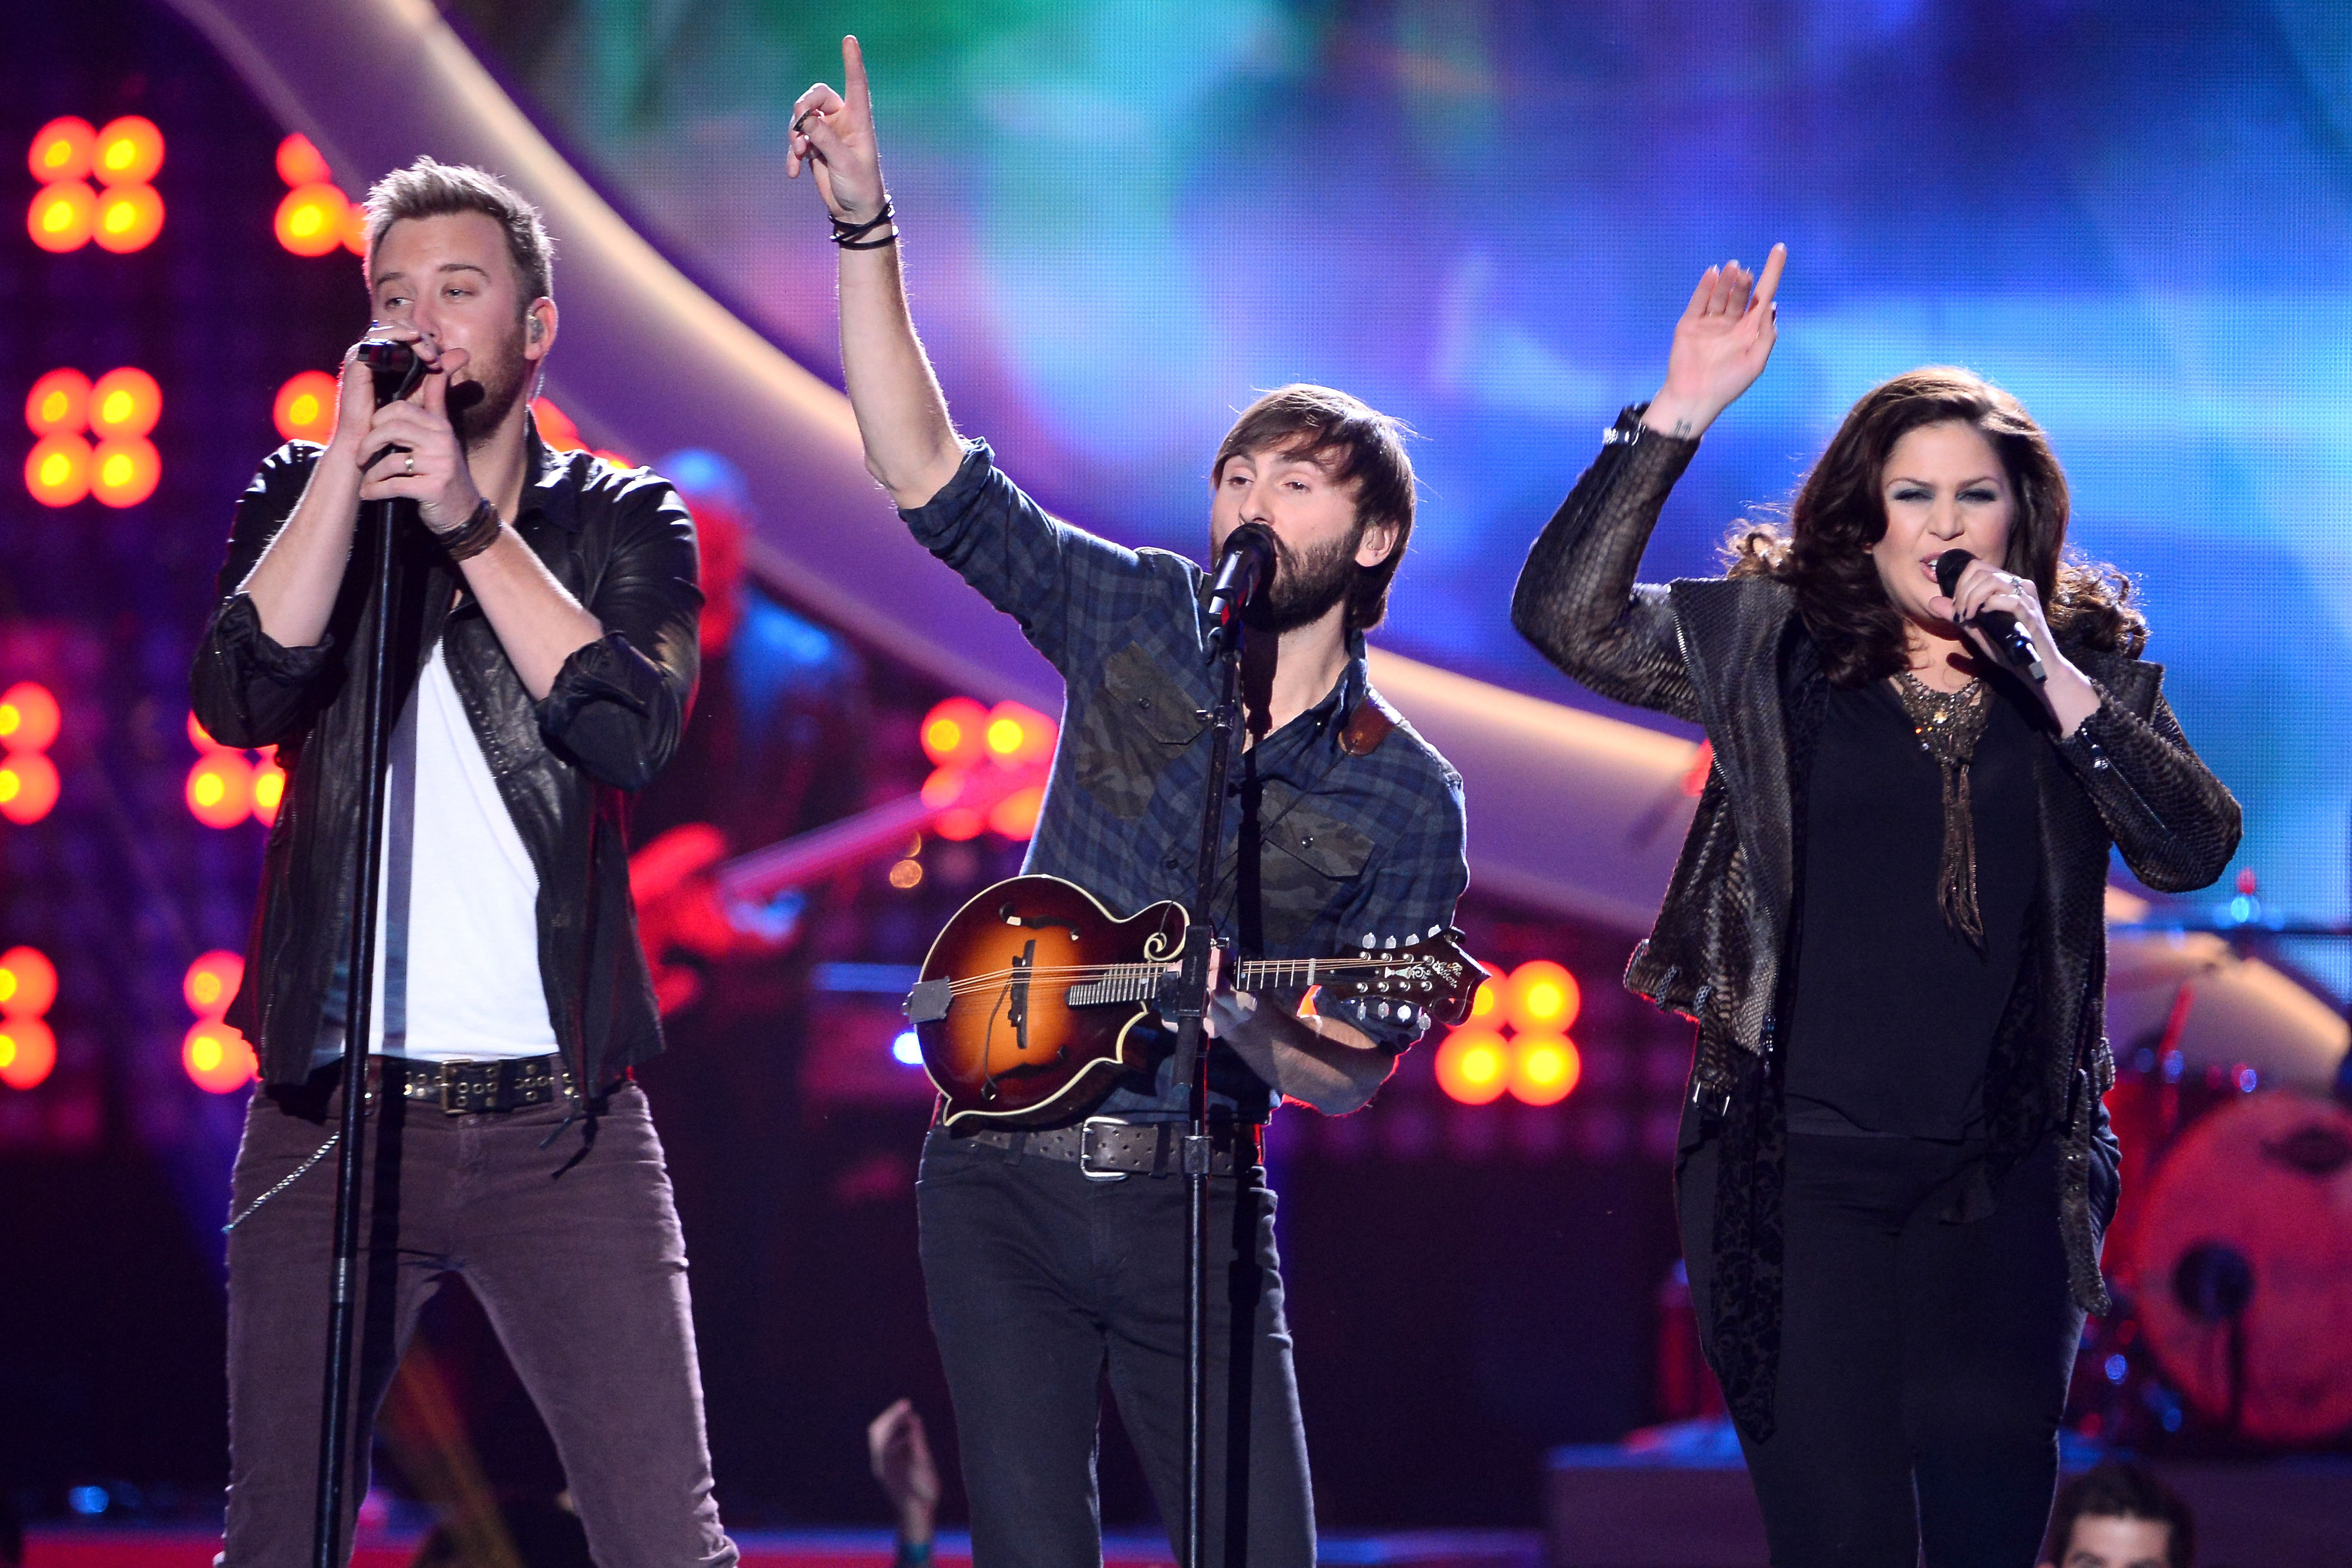 Lady Antebellum Is Back With An Upbeat Track to Start Your Weekend Right